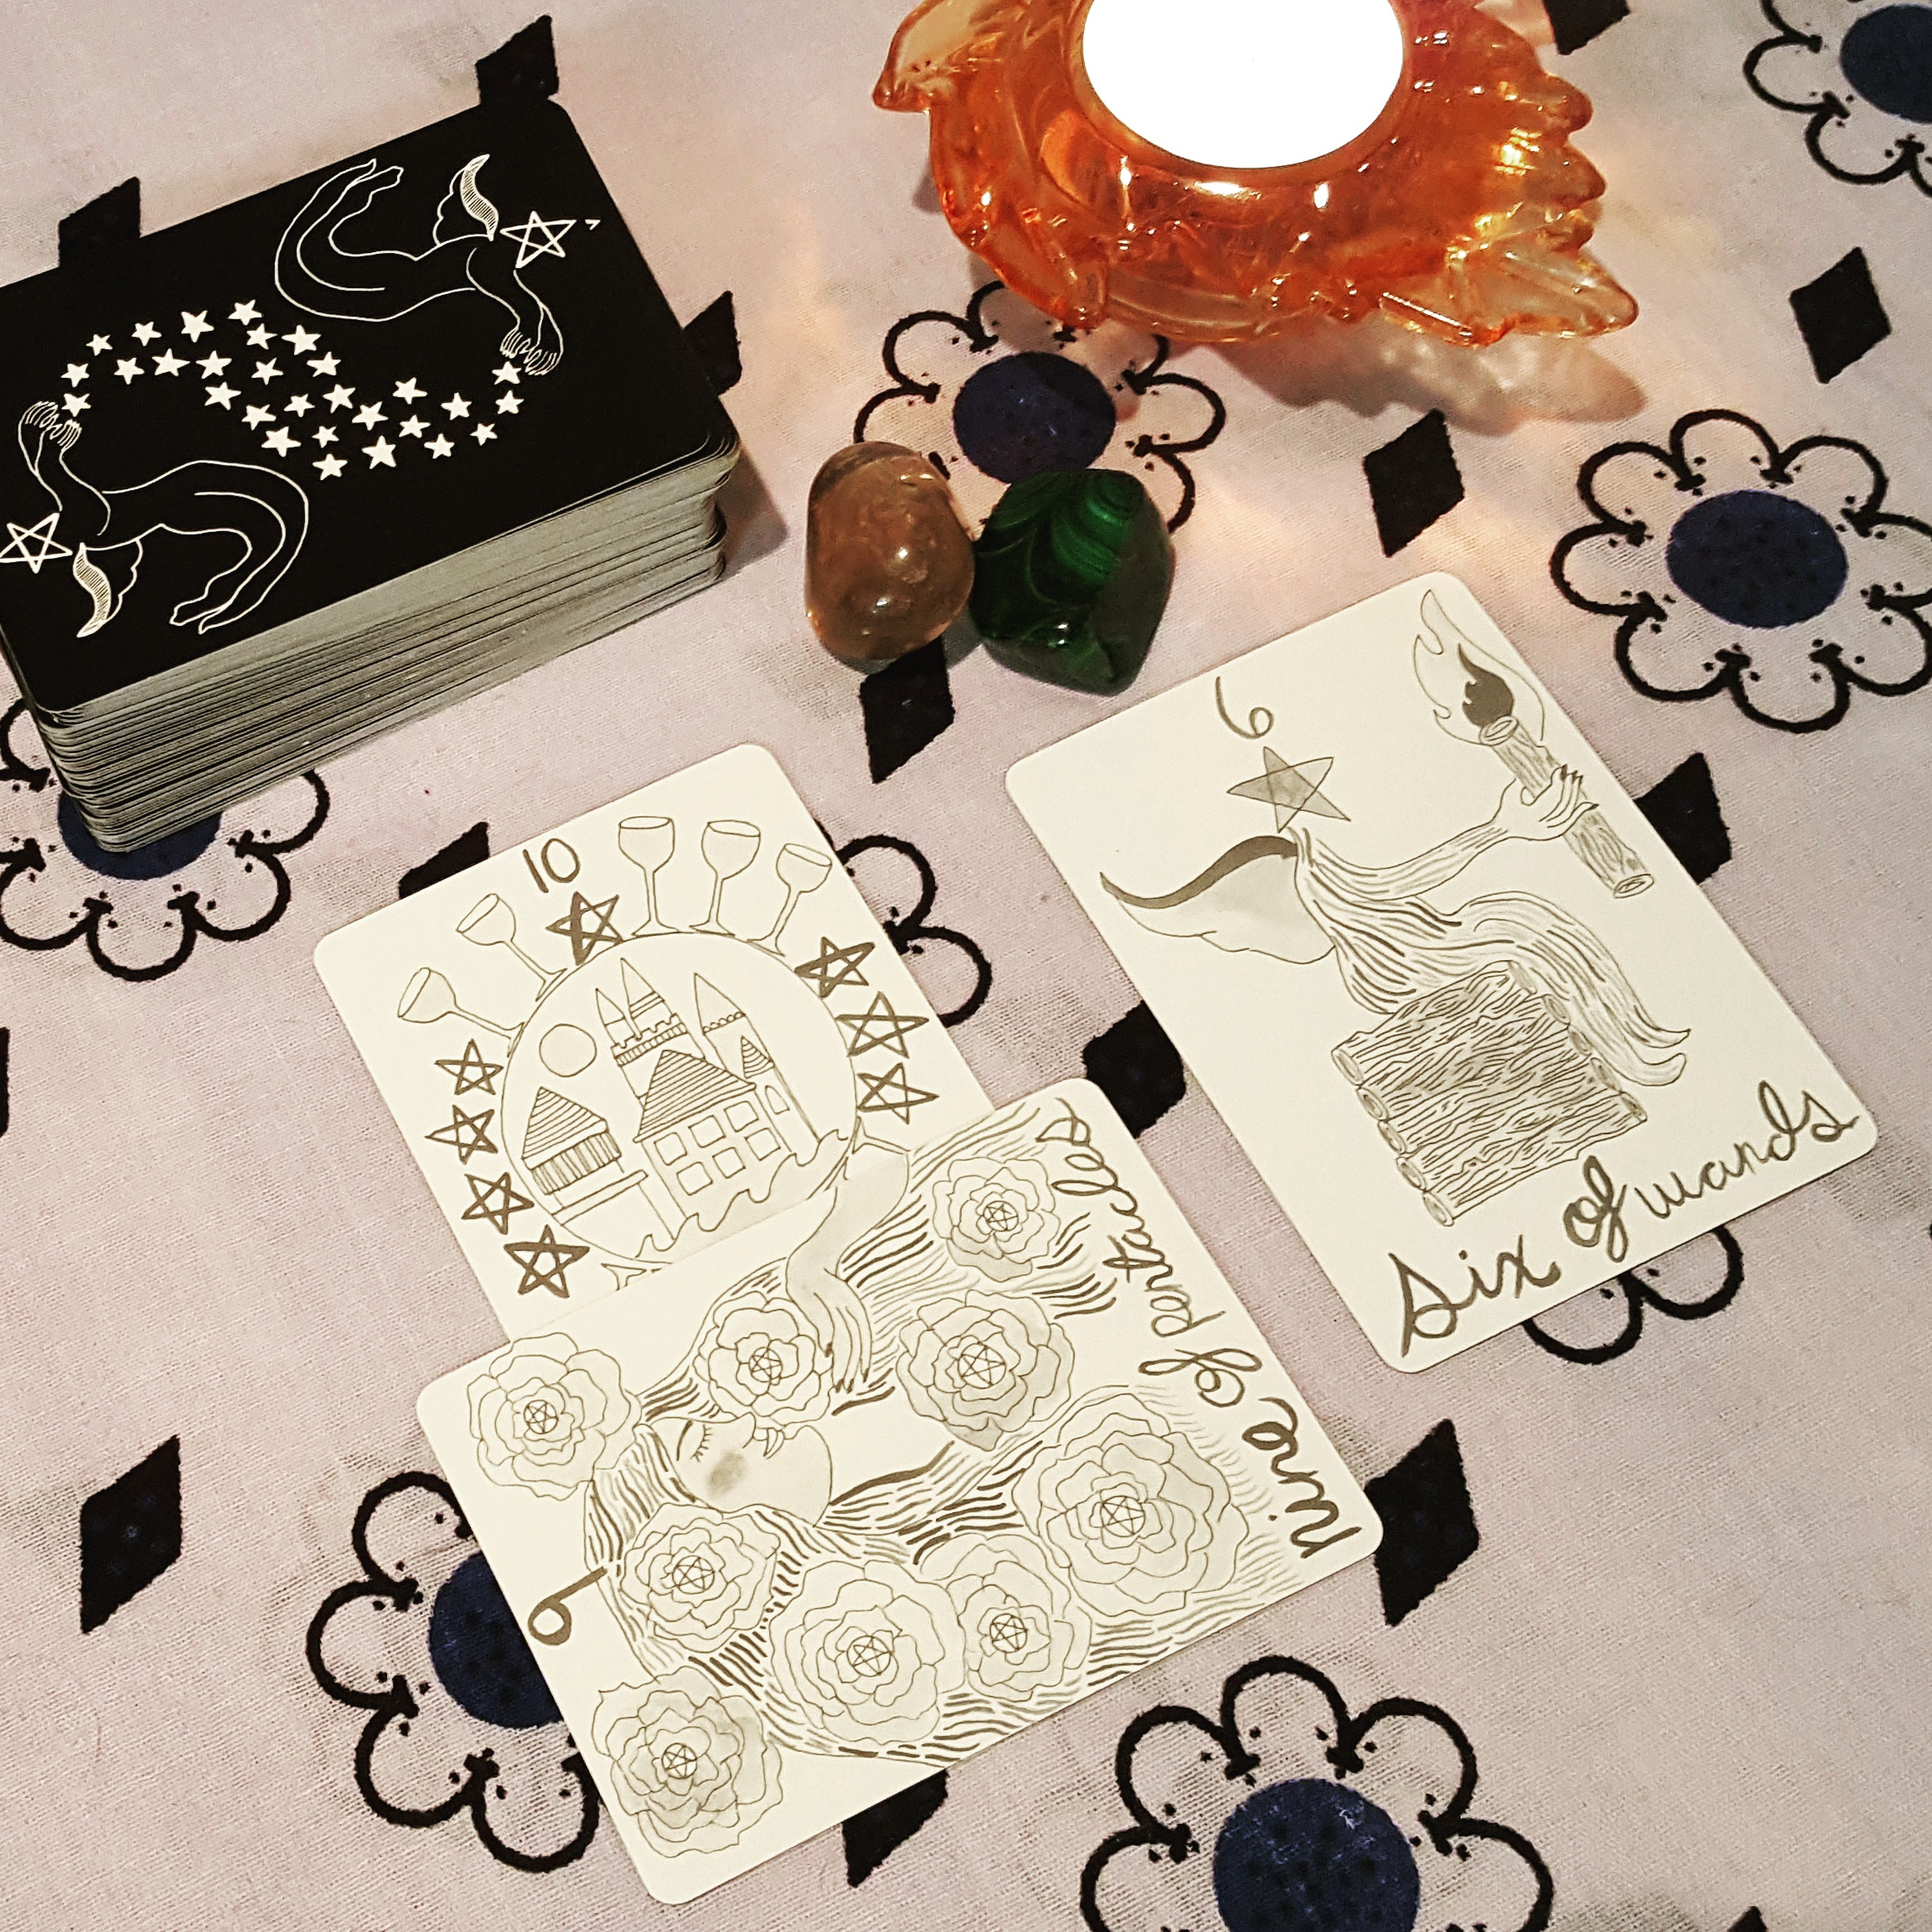 My 3 Cards to the Heart reading with the Divina Tarot